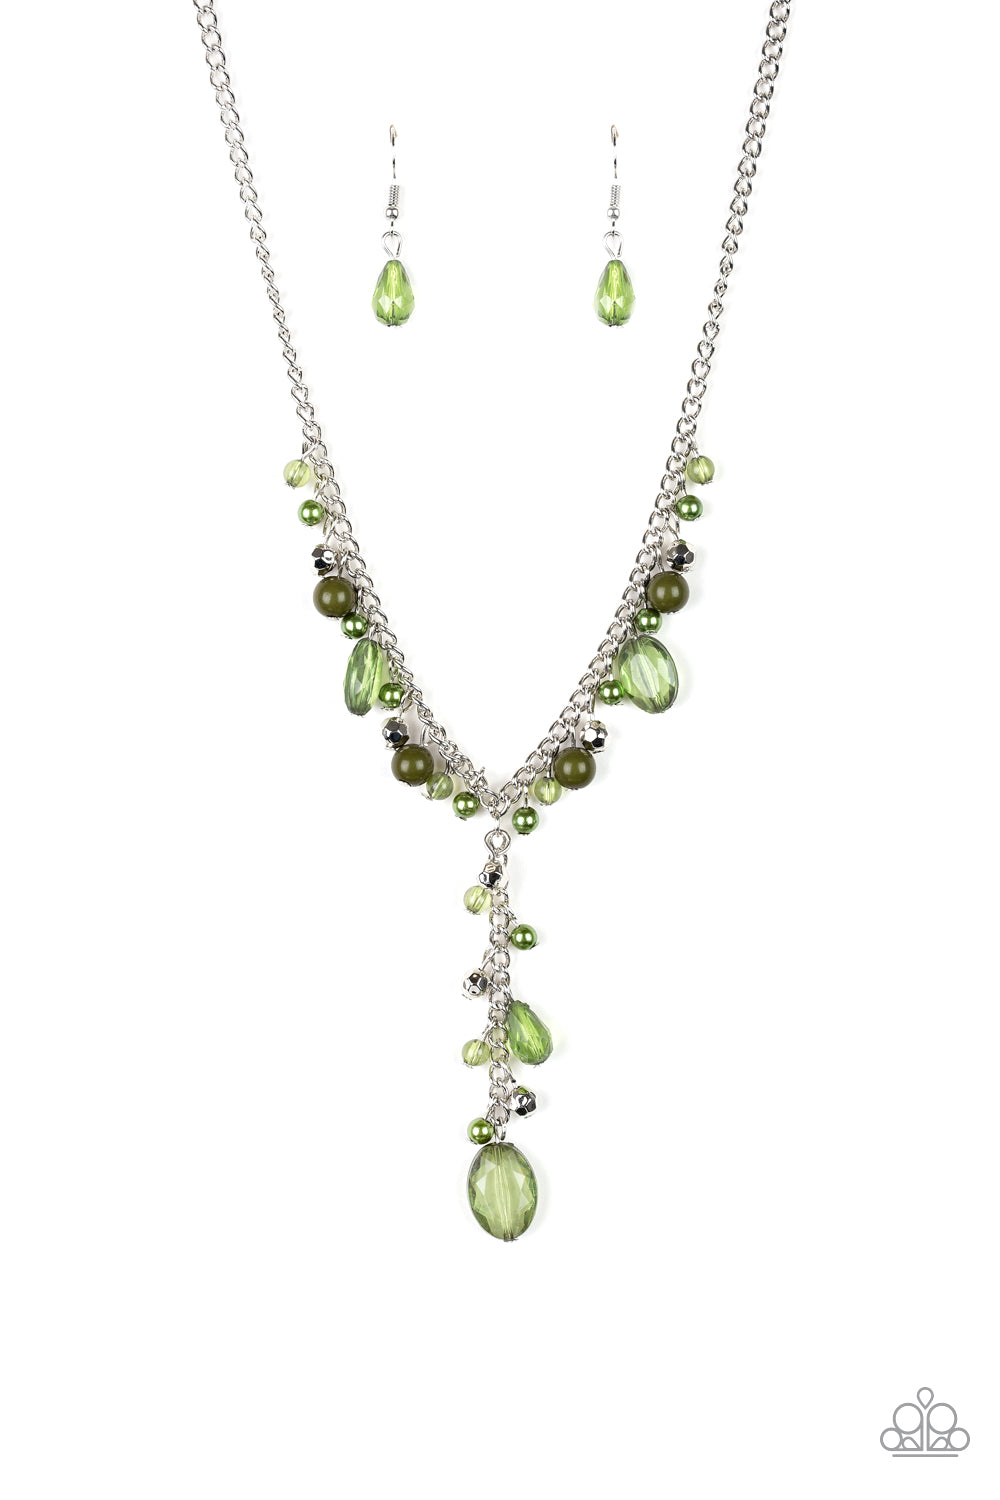 Crystal Coture -Green Paparazzi Jewelry Necklace